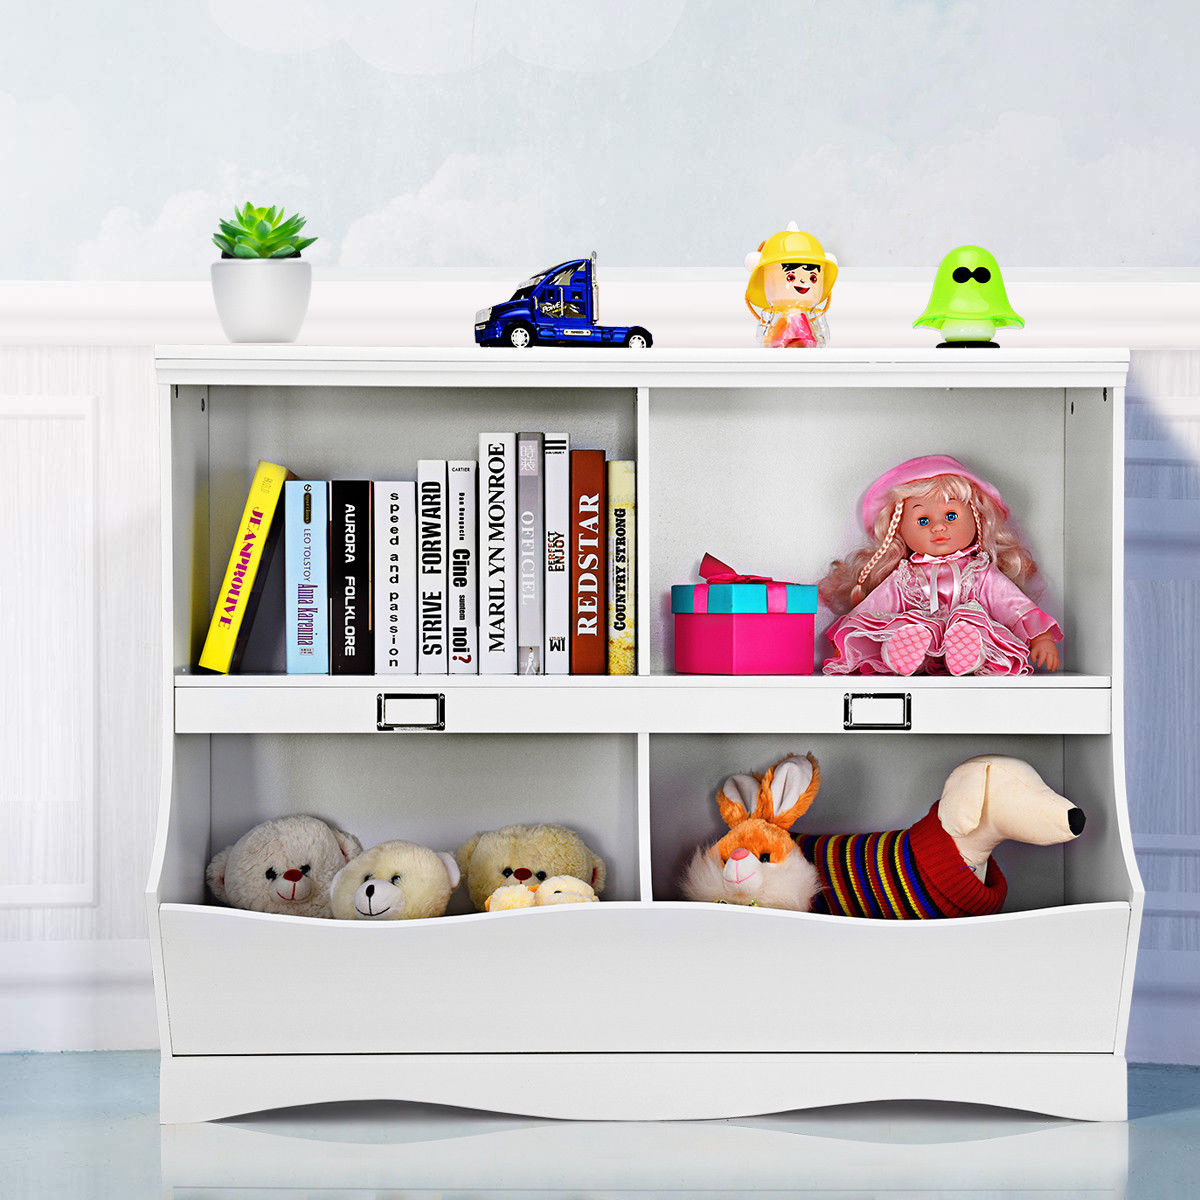 Gymax Children Storage Unit Kids Bookshelf Bookcase Baby Toy Organizer Shelf White